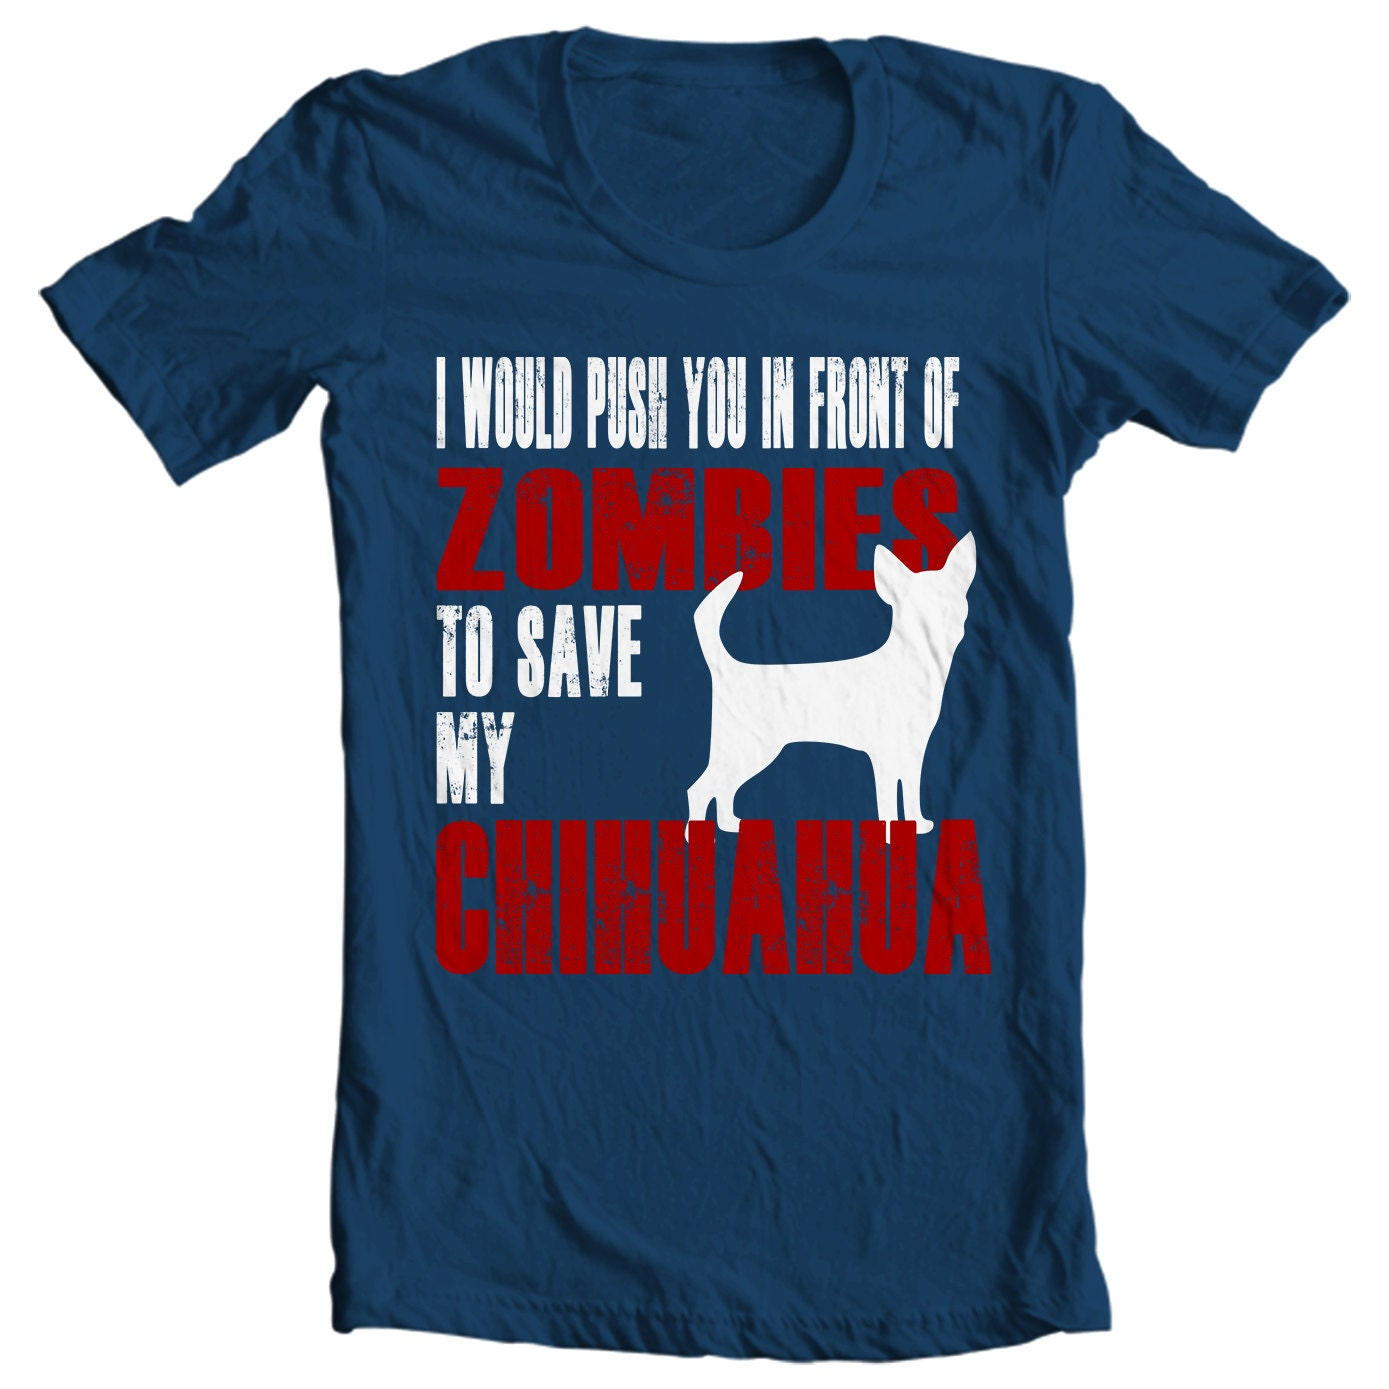 Chihuahua T-shirt - I Would Push You In Front Of Zombies To Save My Chihuahua - My Dog ChihauhaT-shirt